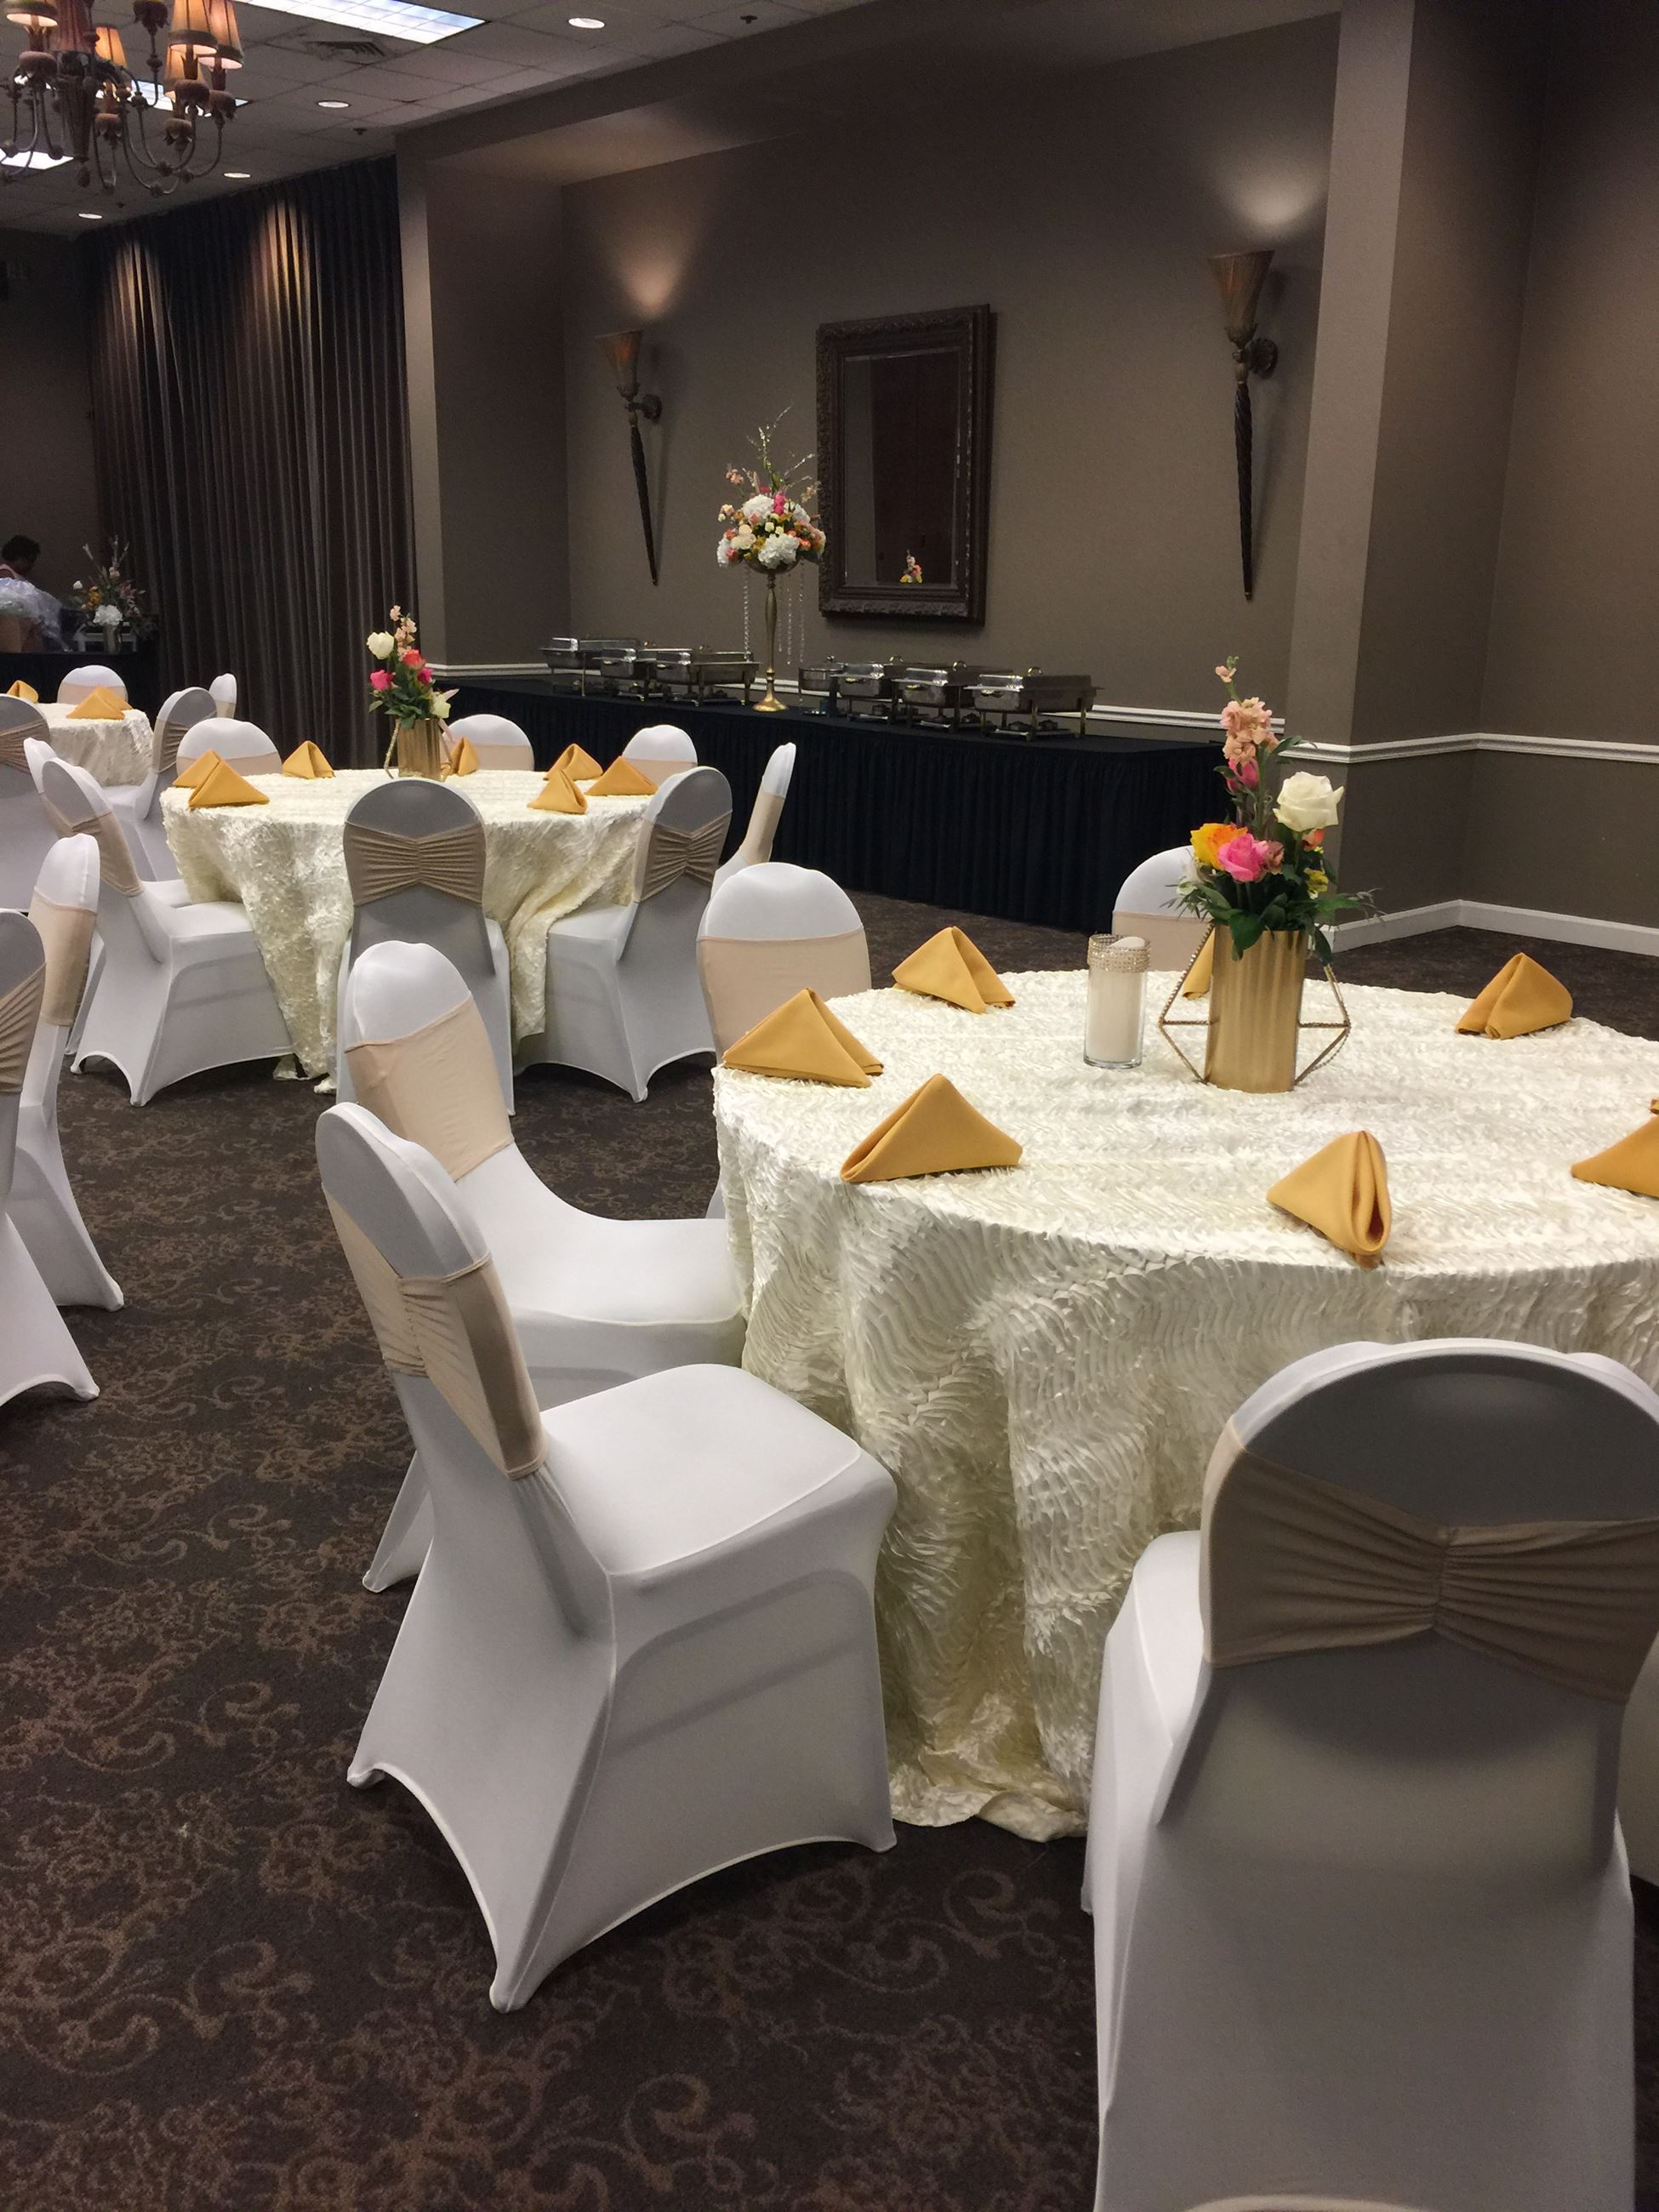 Tables and a buffet are set up for a reception